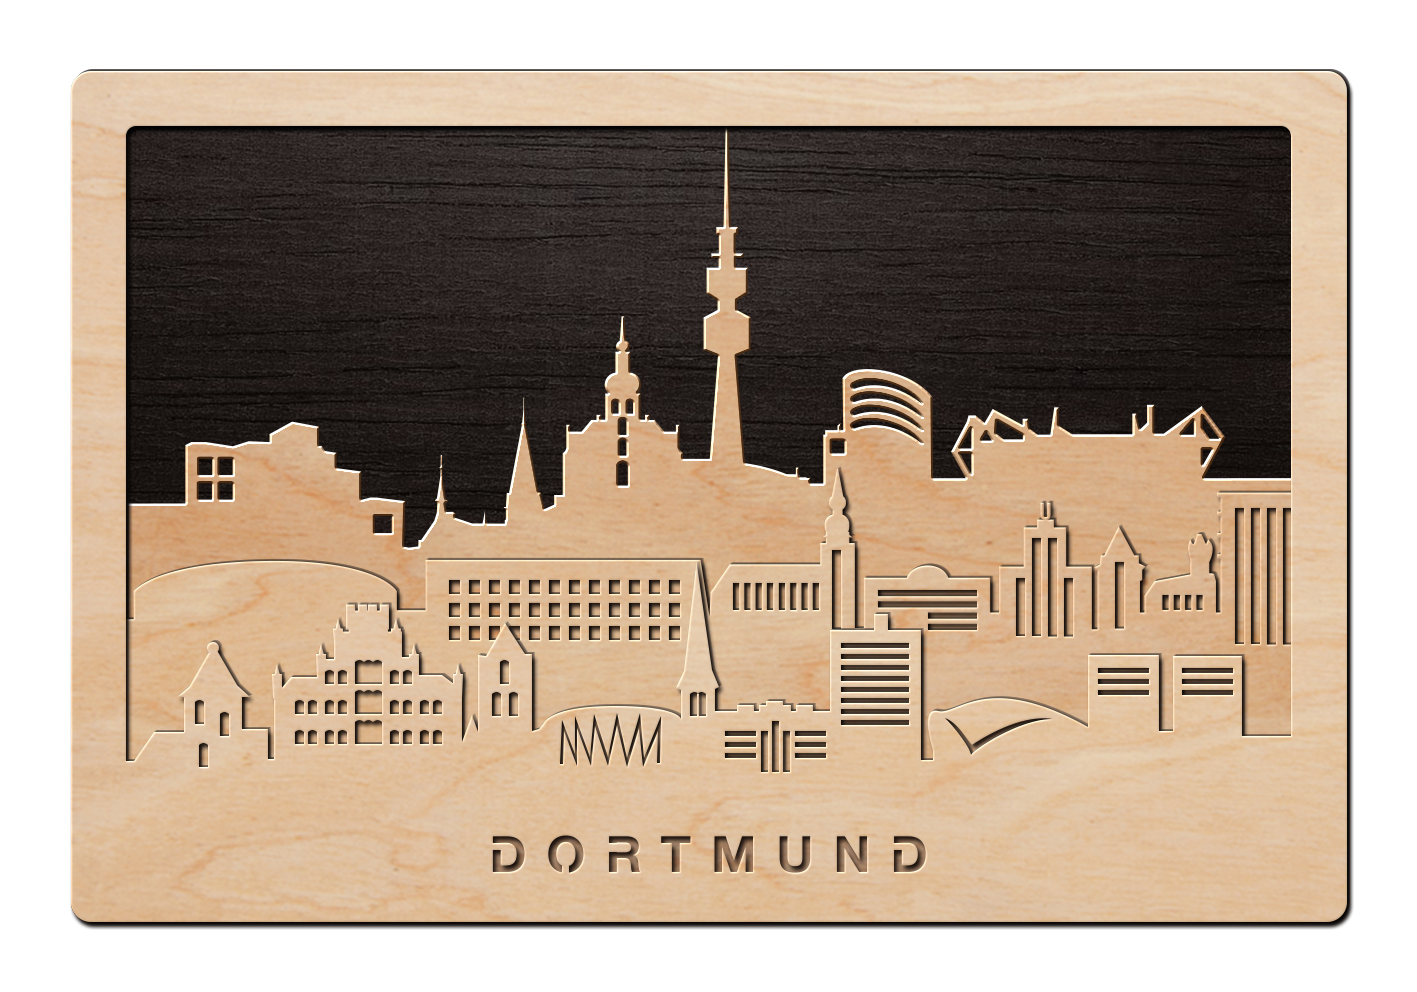 3d wandbild aus holz skyline dortmund einfach pers nlich. Black Bedroom Furniture Sets. Home Design Ideas